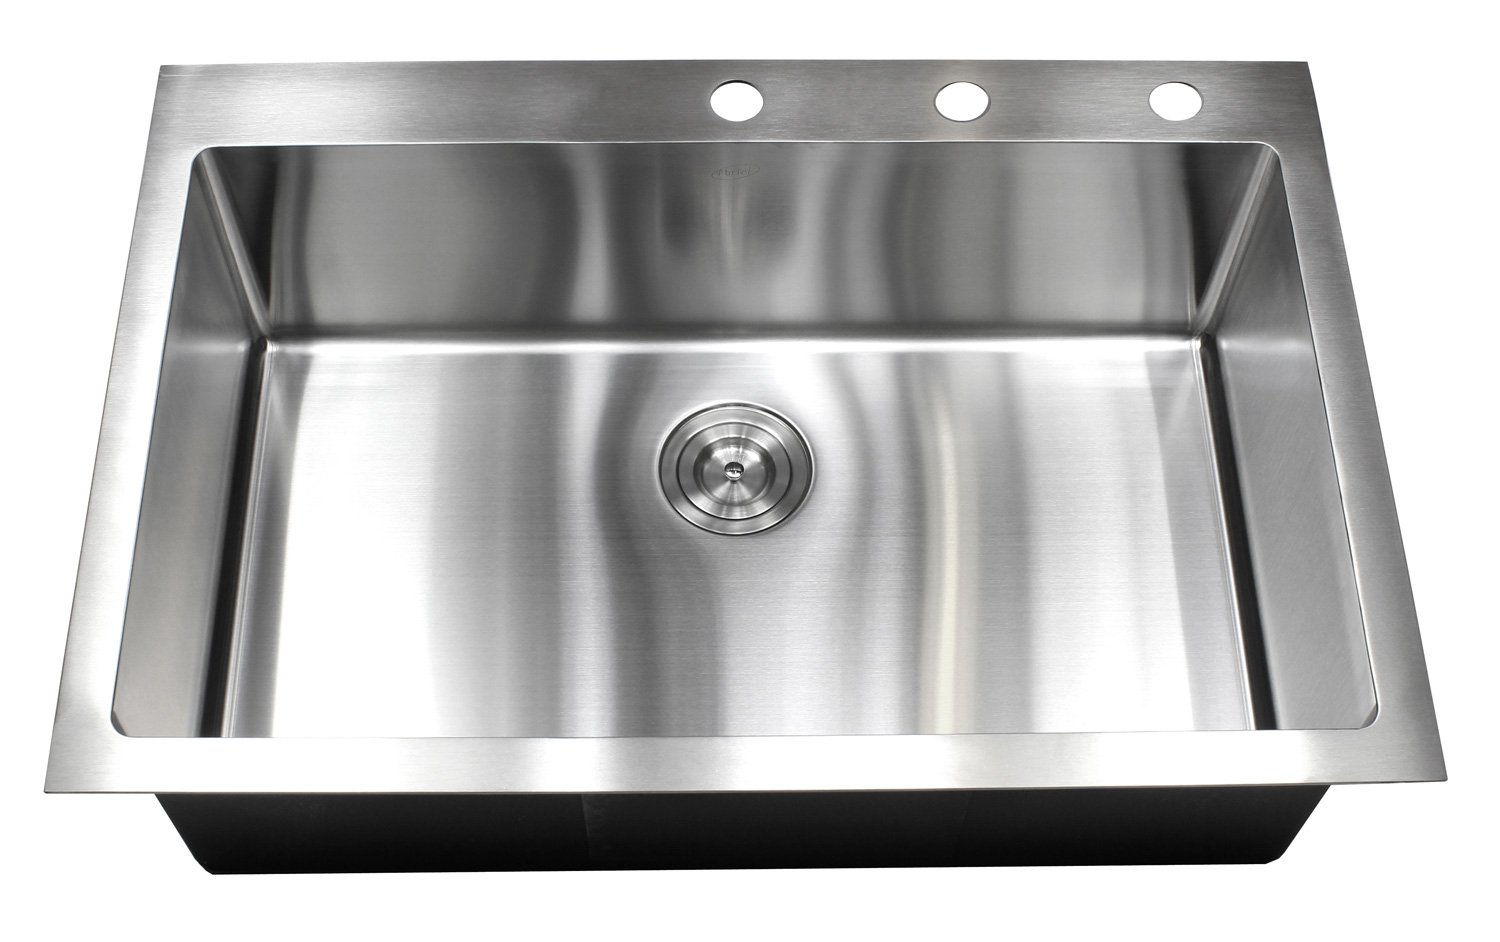 33 Inch Drop In Topmount Stainless Steel Kitchen Sink Package - 16 Gauge Single Bowl Basin w/ 9 Gauge Deck, 33'' x 22'', with 2 Cover Plates